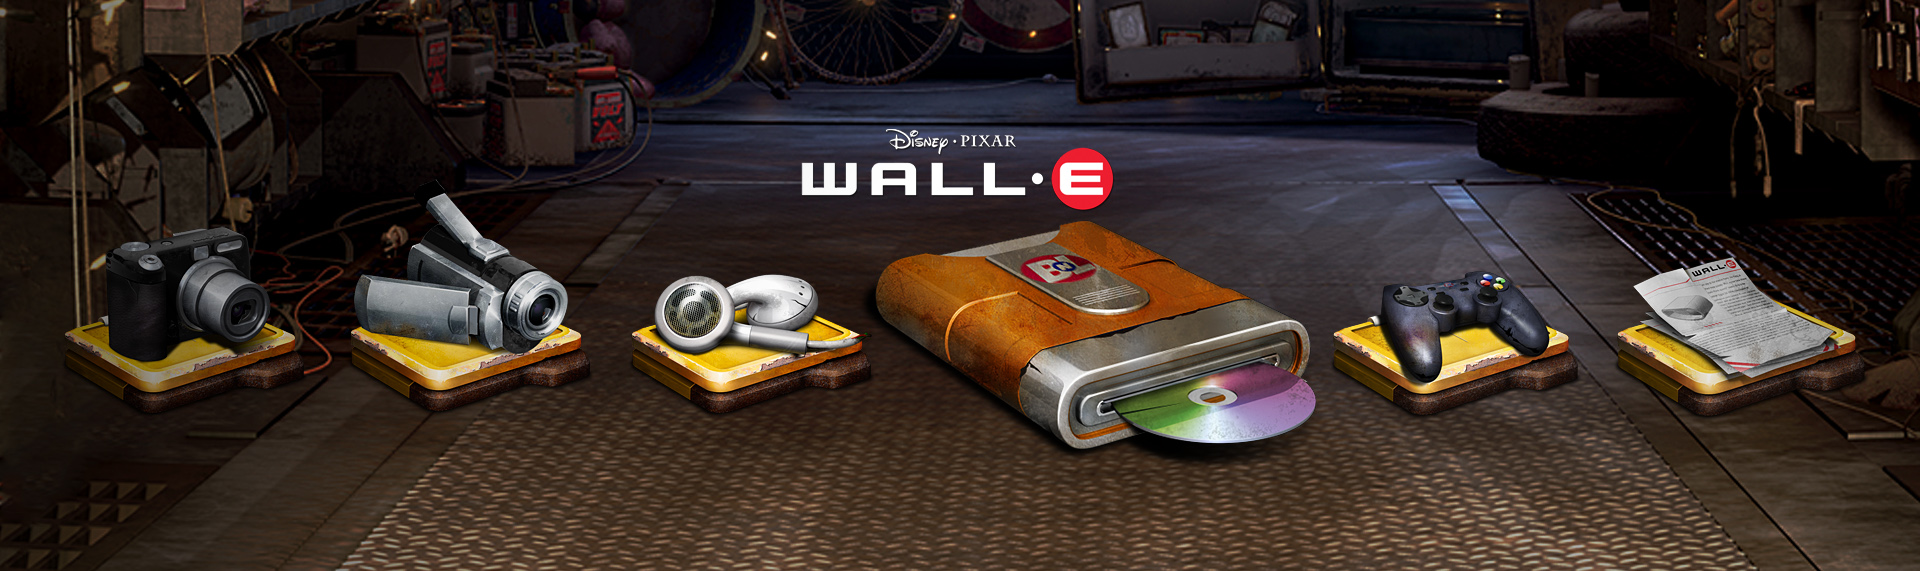 Disney Pixar's WALL-E Windows Desktop Icon Set  Client: Under License from The Walt Disney Company  Introducing the official, Pixar-approved WALL-E Windows desktop icon set powered by Hyperdesk. Featuring well over 50+ icons, the set's main folder icons were designed to mimic WALL-E's weather-beaten metal. The rest of the set, was designed to appear as if they were pulled from a long, forgotten world. This creates a complete symmetry between the lovable character and his Windows XP desktop theme and icon set. Disney and Pixar-approved.